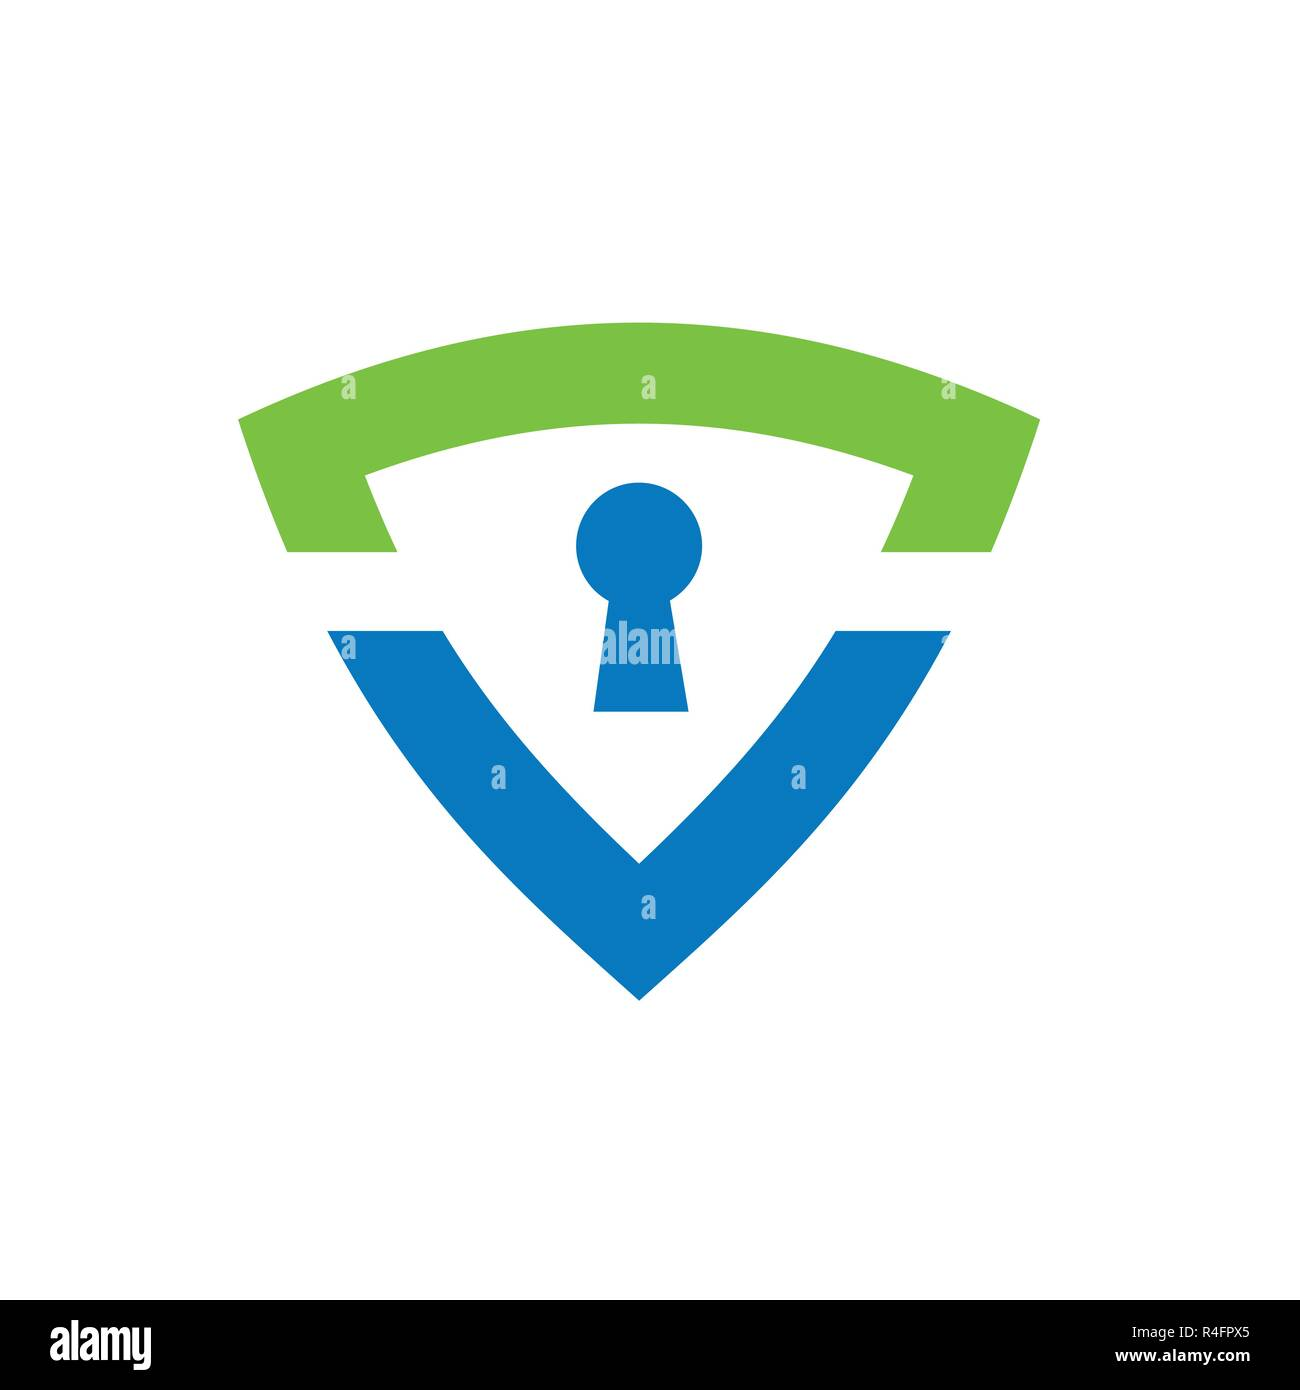 Secure shield icon, logo element  Made from 100% vector